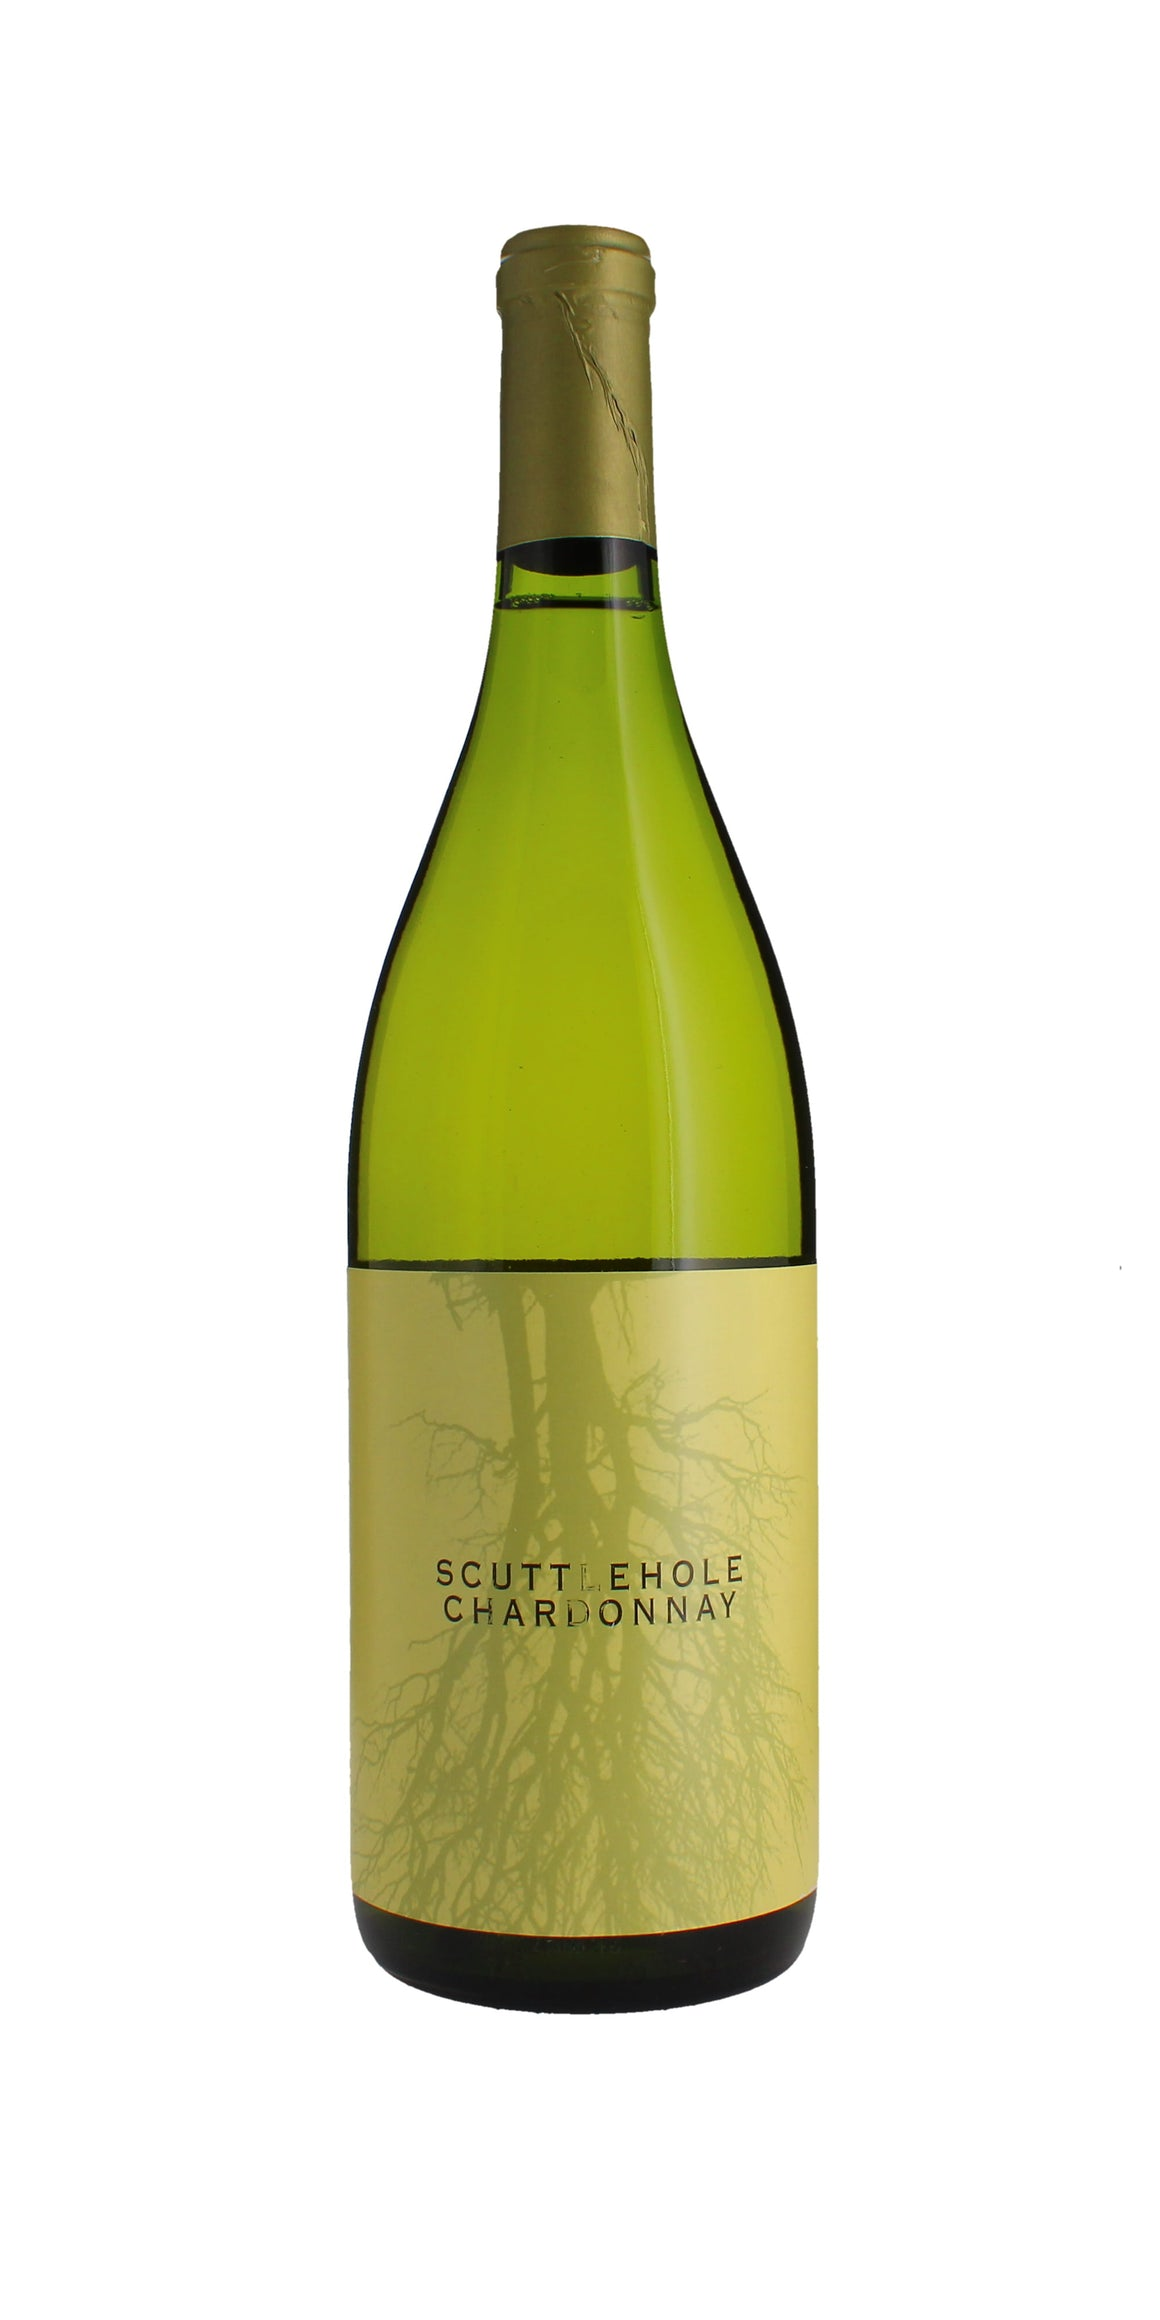 Channing Daughters Scuttlehole Chardonnay, The Hamptons Long Island 2016